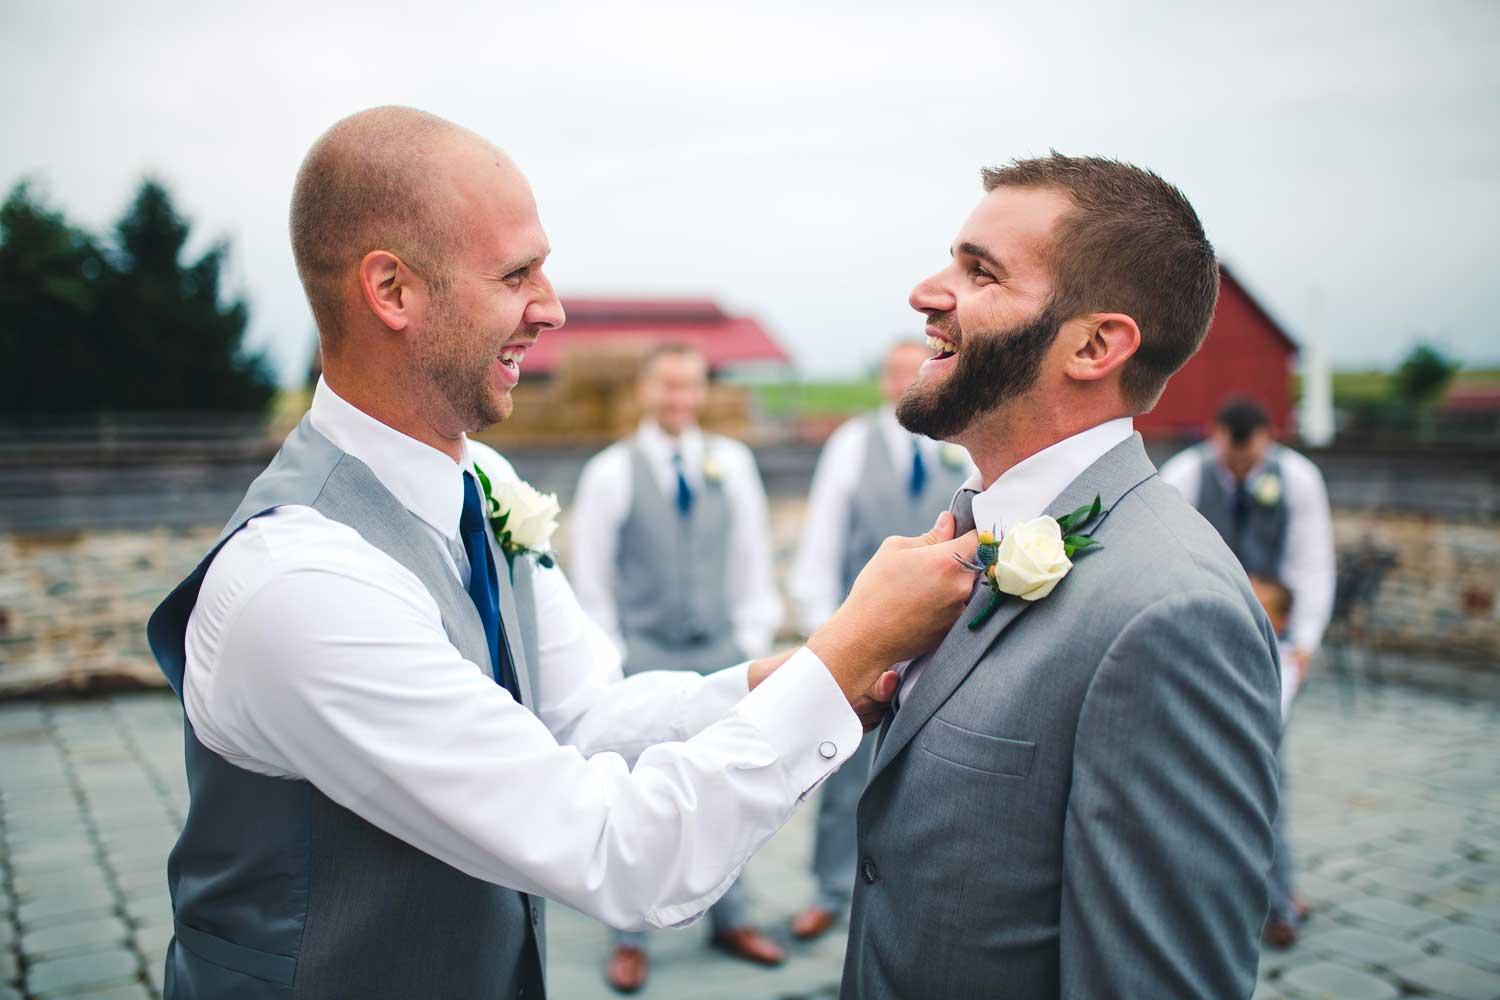 Best man adjusting tie